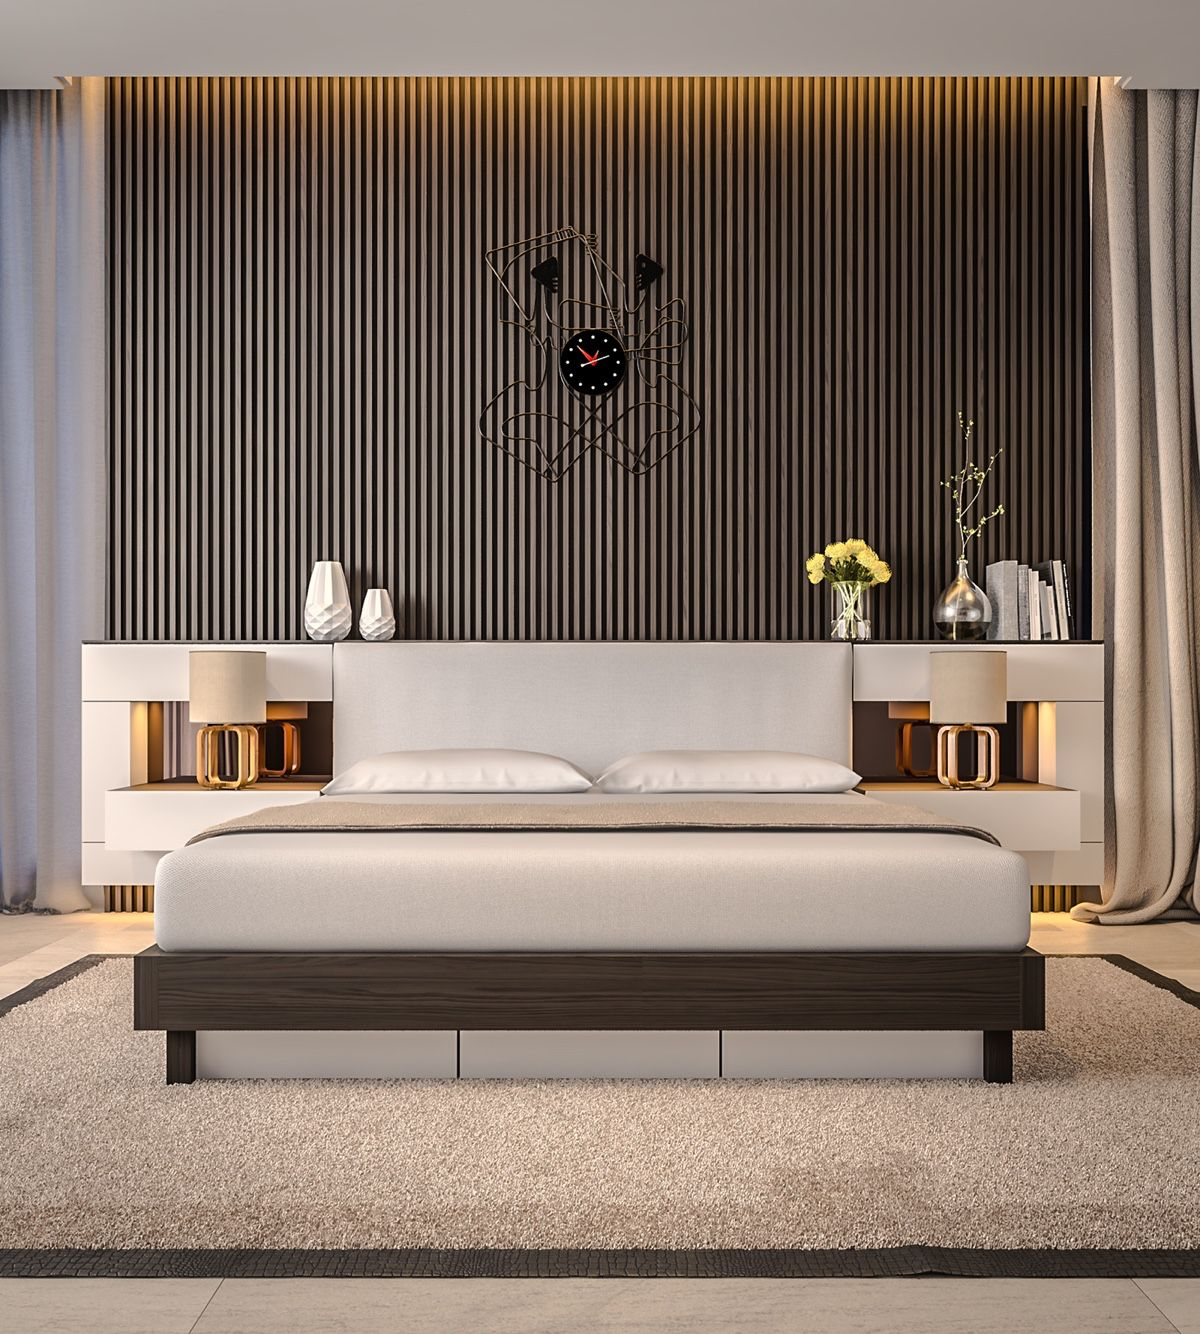 bold bedroom Impove Your Luxirous Sleeptime With Bold Bedroom Spaces unnamed file3